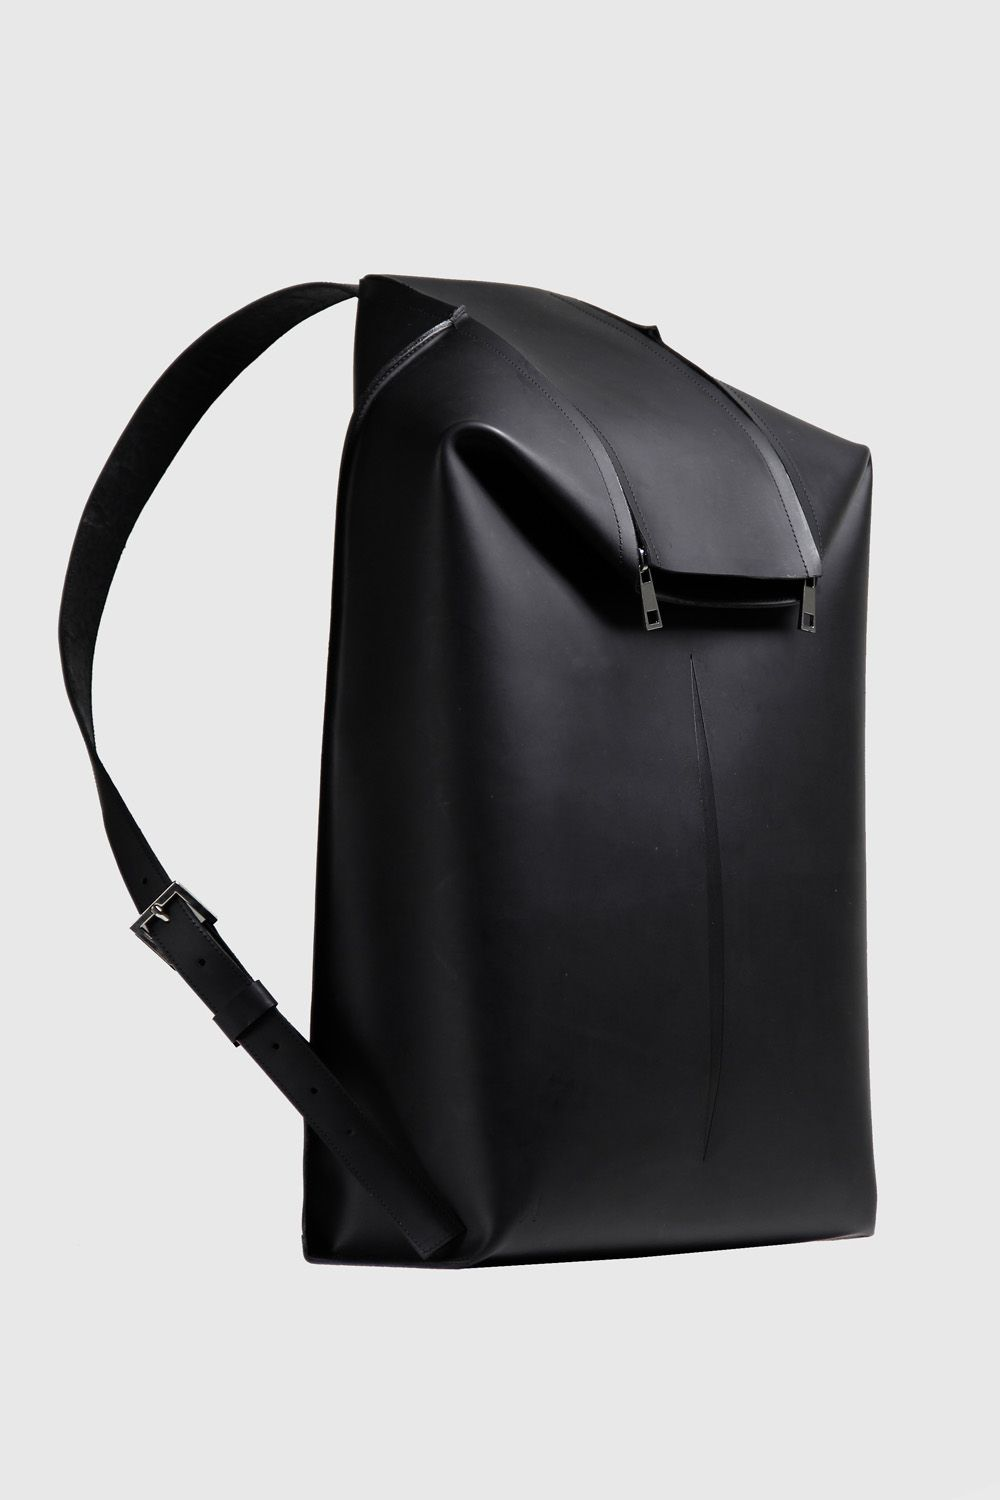 breakline bags by Agnes Kovacs and Eniko